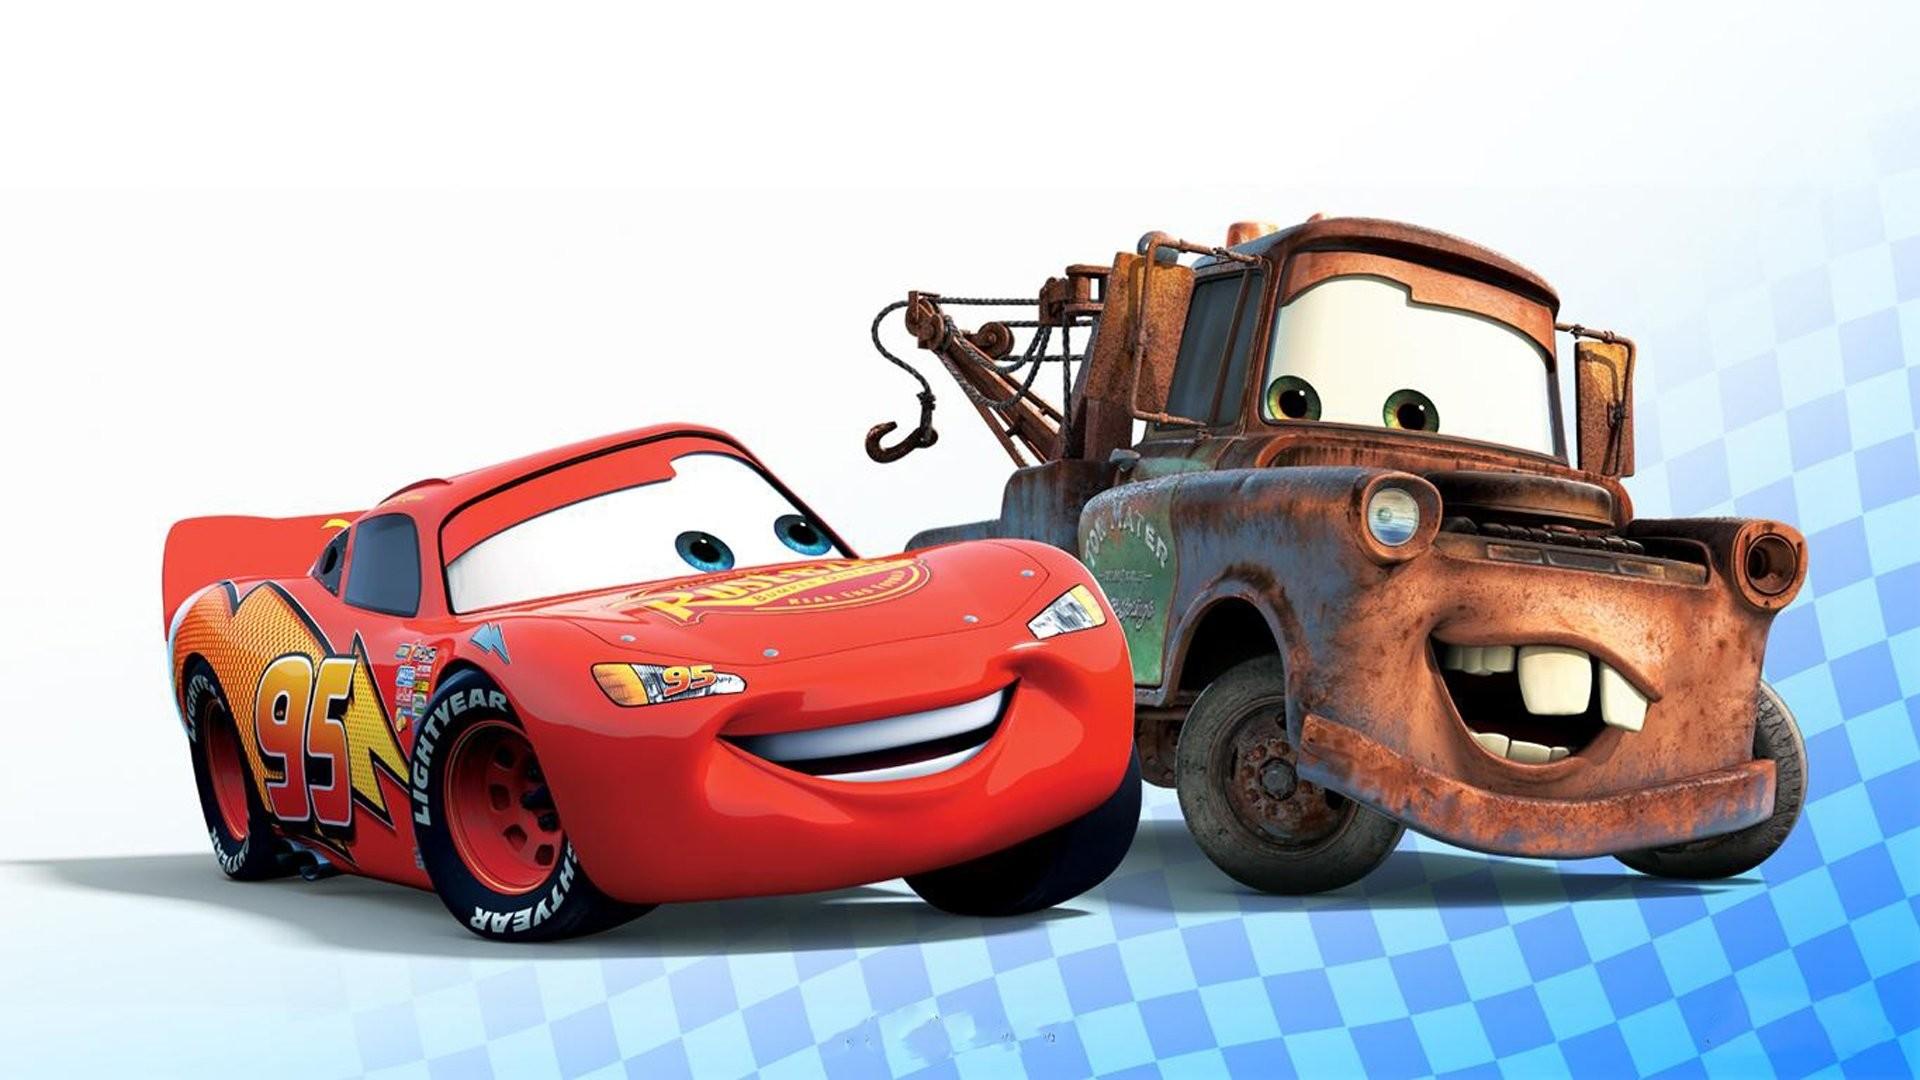 1920x1080 - Wallpaper Cars Cartoon 22